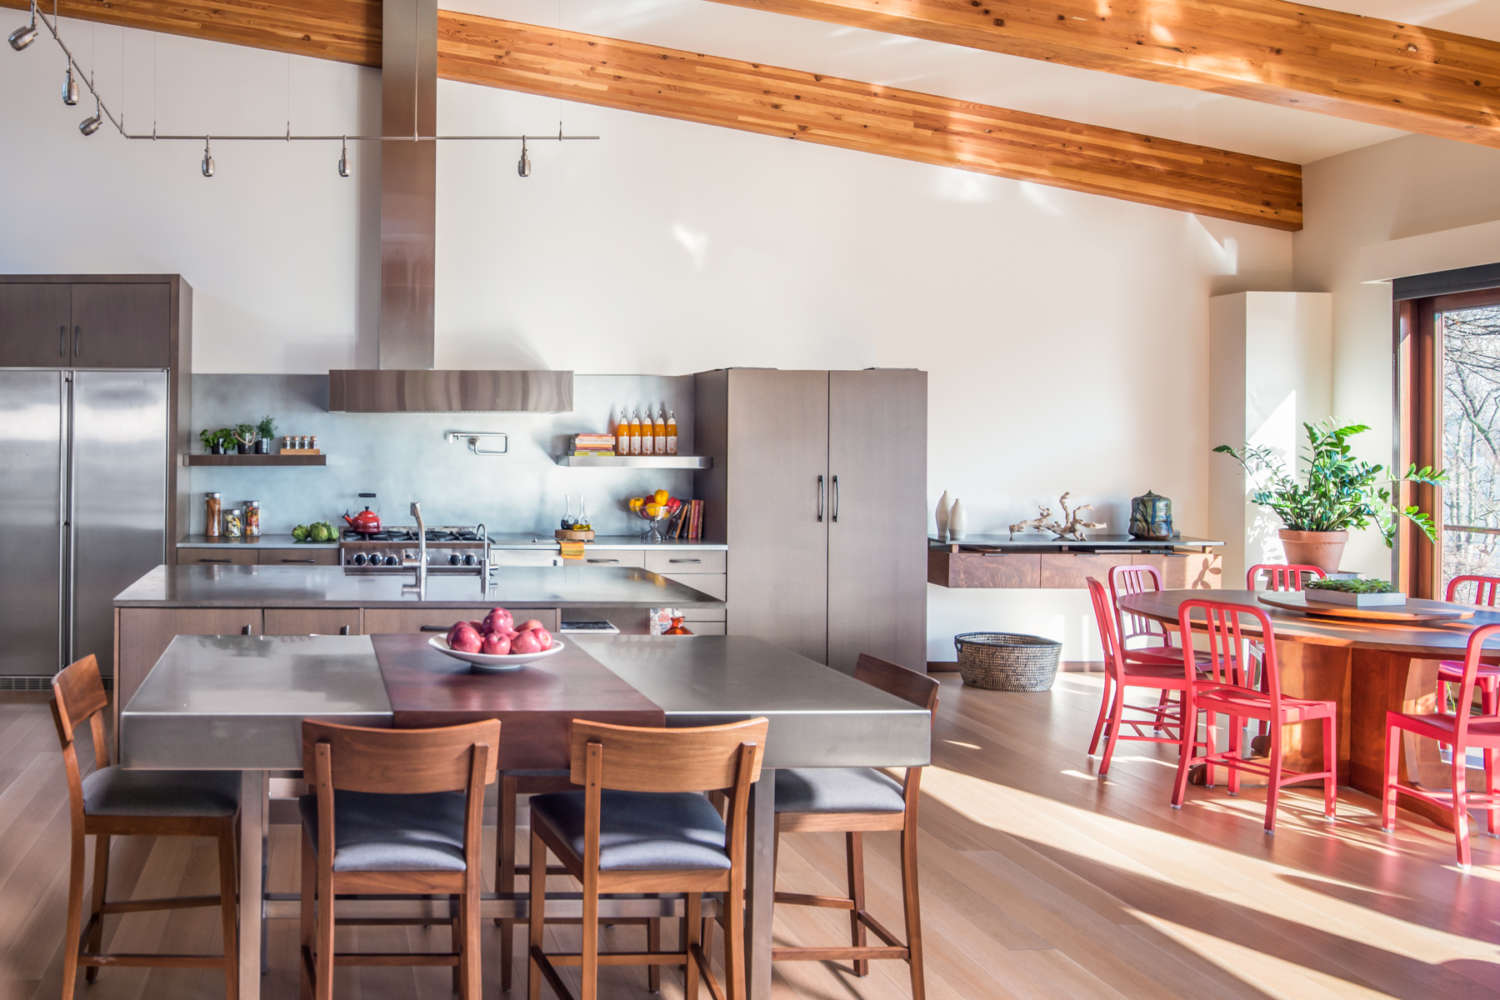 Open kitchen with exposed beams features fully custom flat panel, frameless Artcraft Cabinetry in rift cut white oak with smokewood stain. Island and eating area feature brushed stainless surfaces. Design by RitaLuisa Garces of Bilotta Kitchens.